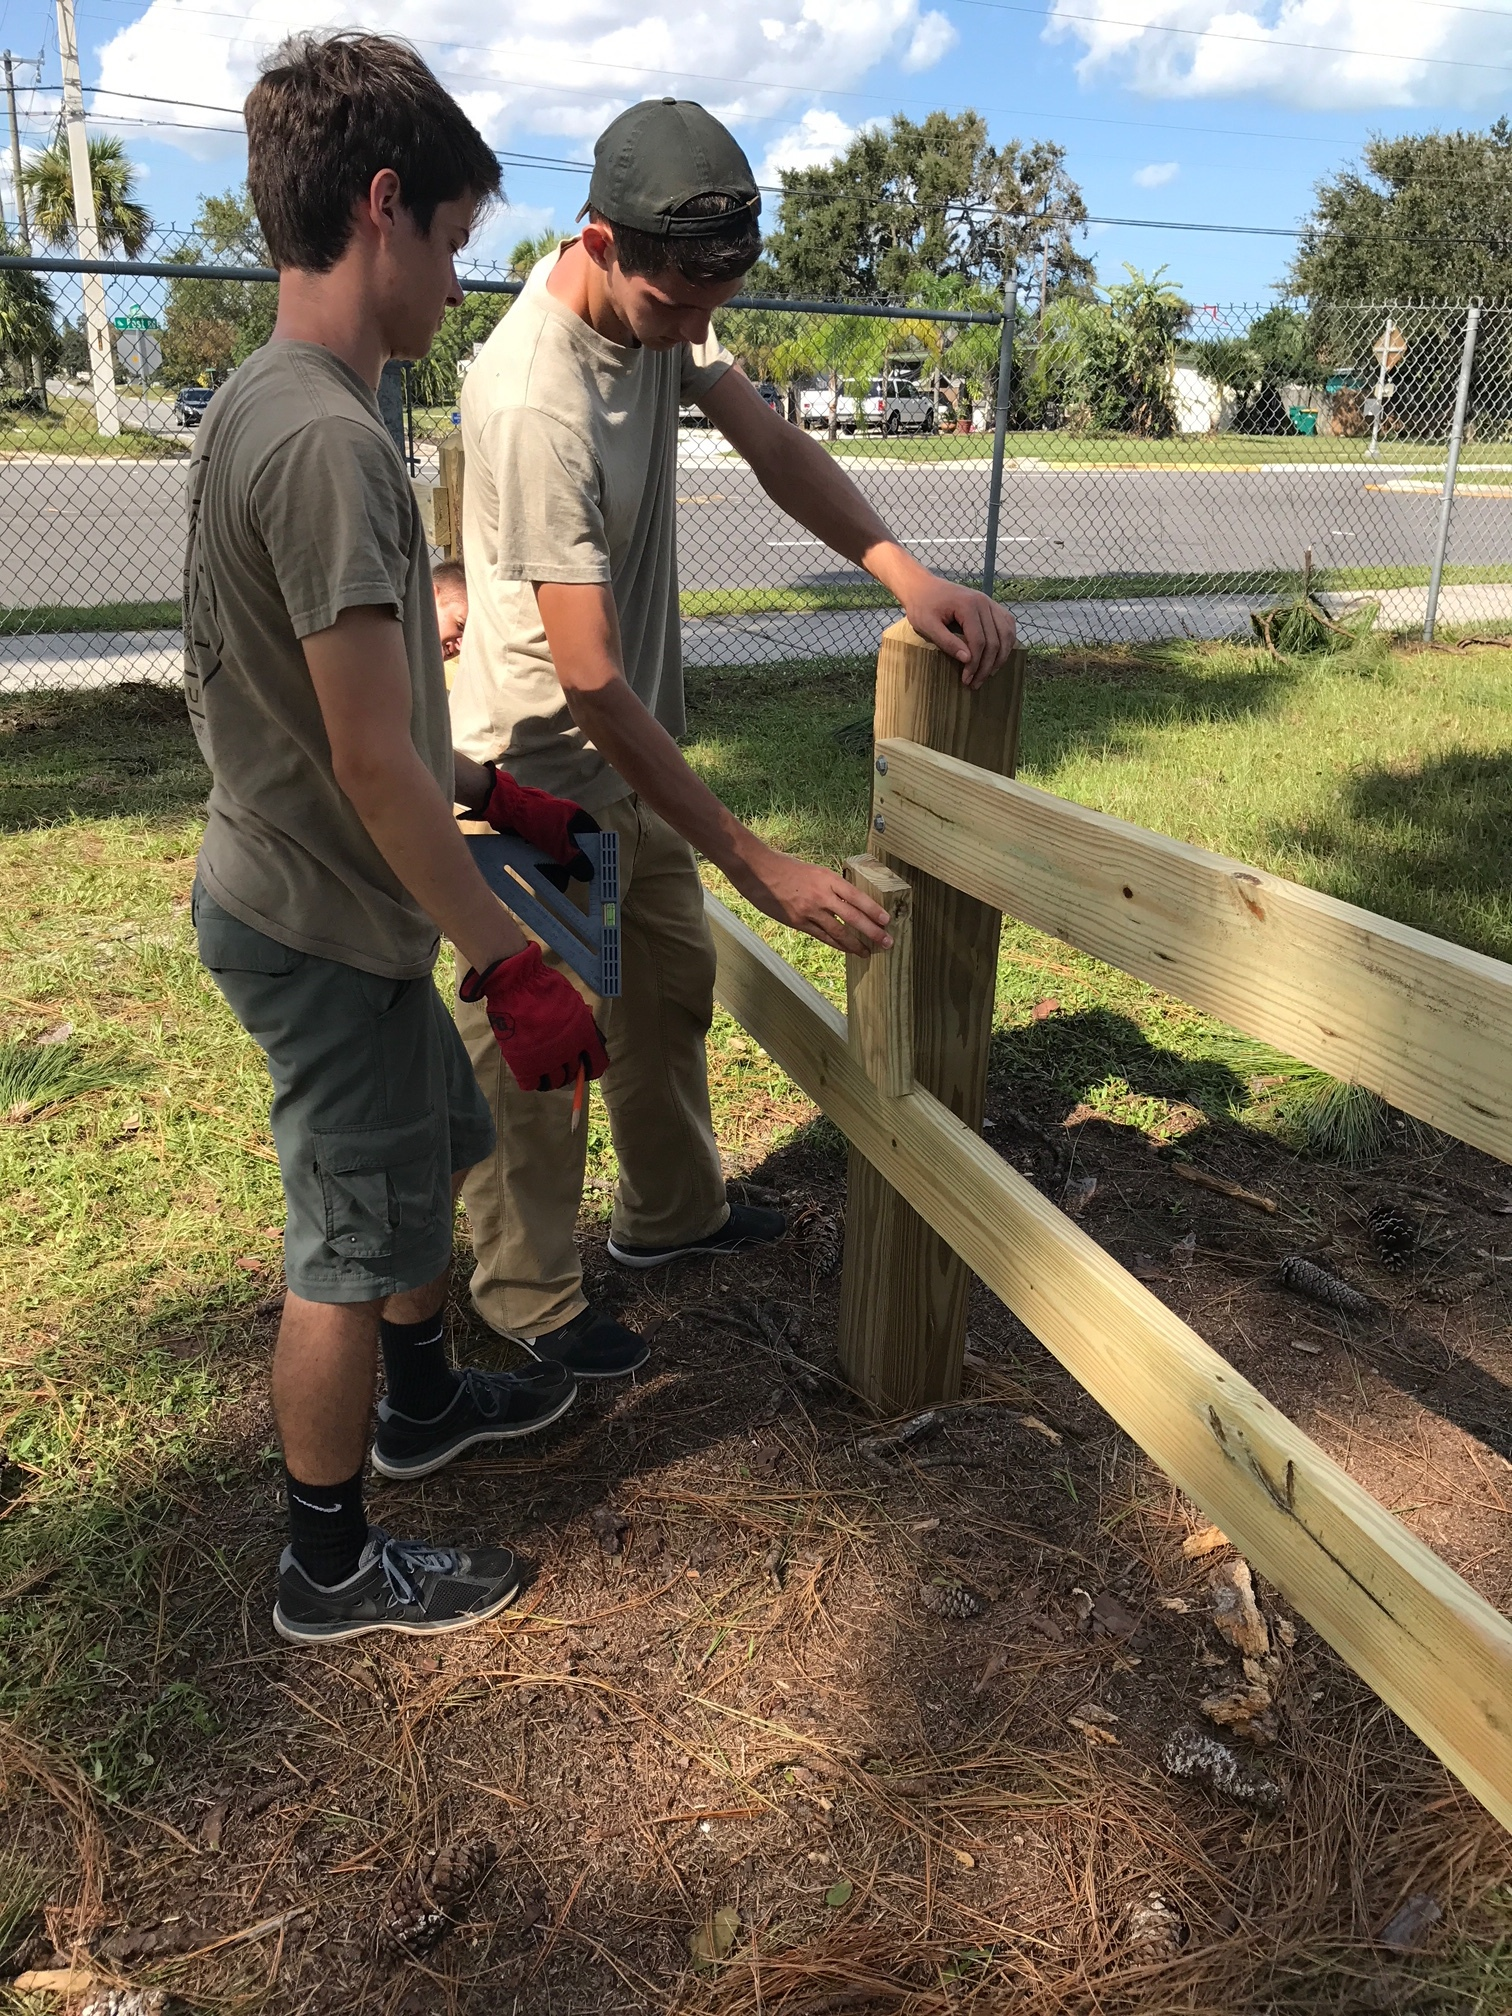 The fence was constructed using treated 6x6 posts, decoratively trimmed, treated 2x7 quality lumber, and weather-proof robust hardware.